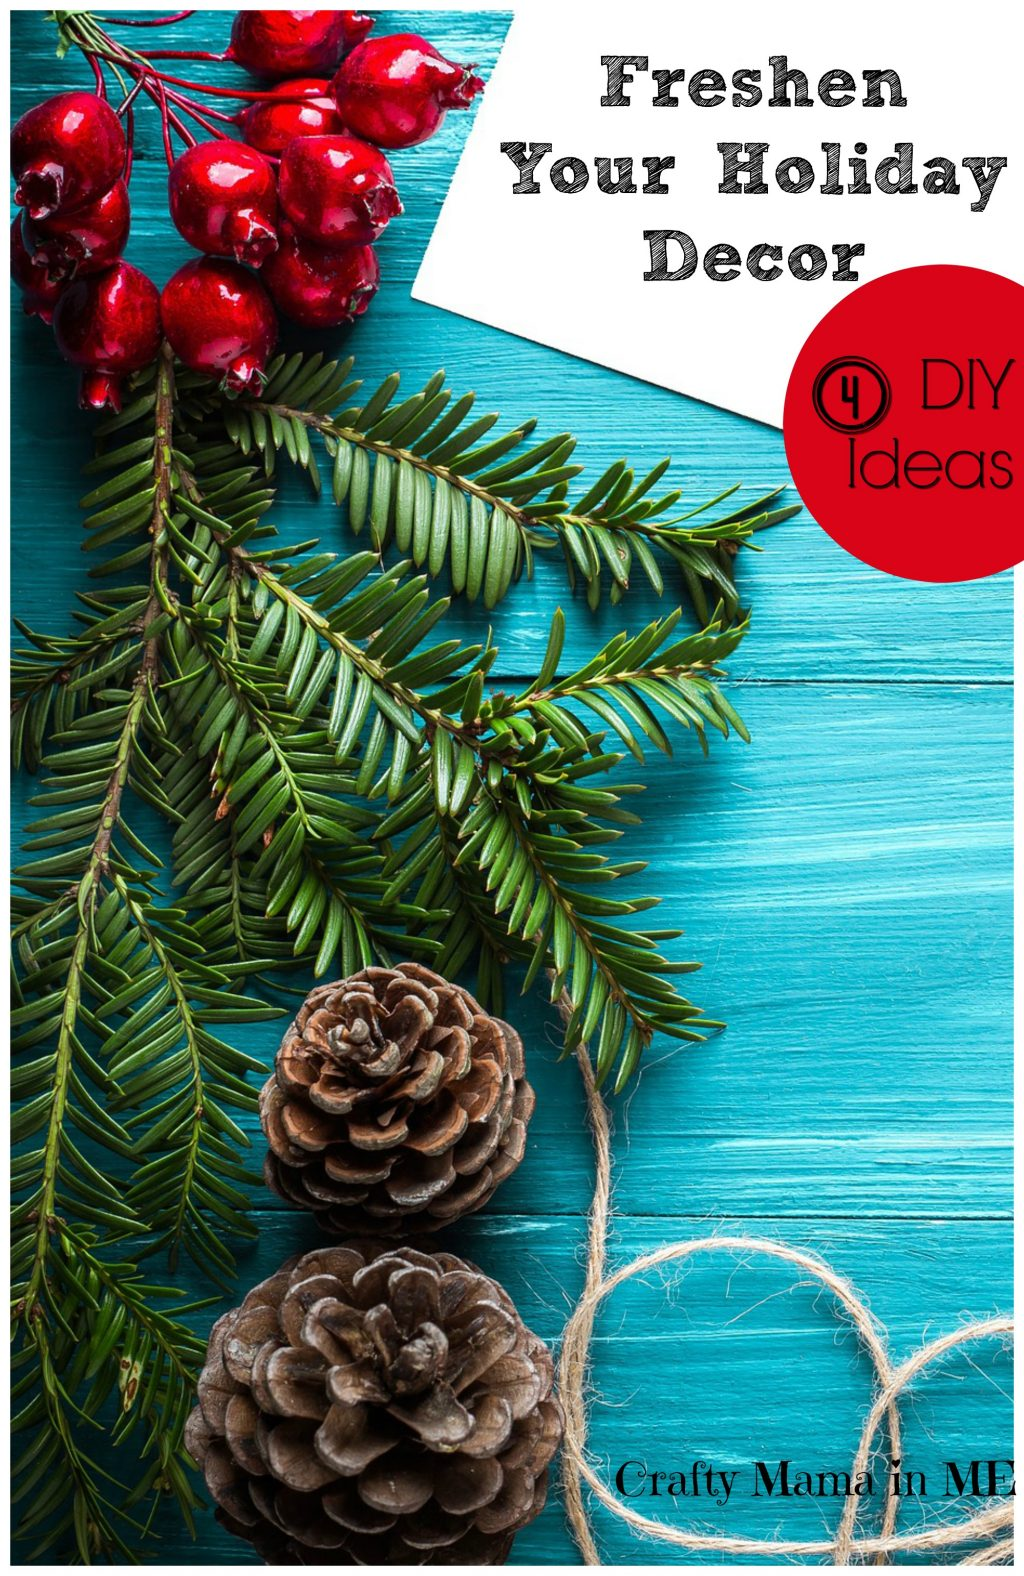 How to Freshen your Holiday Decor with 4 DIY Ideas